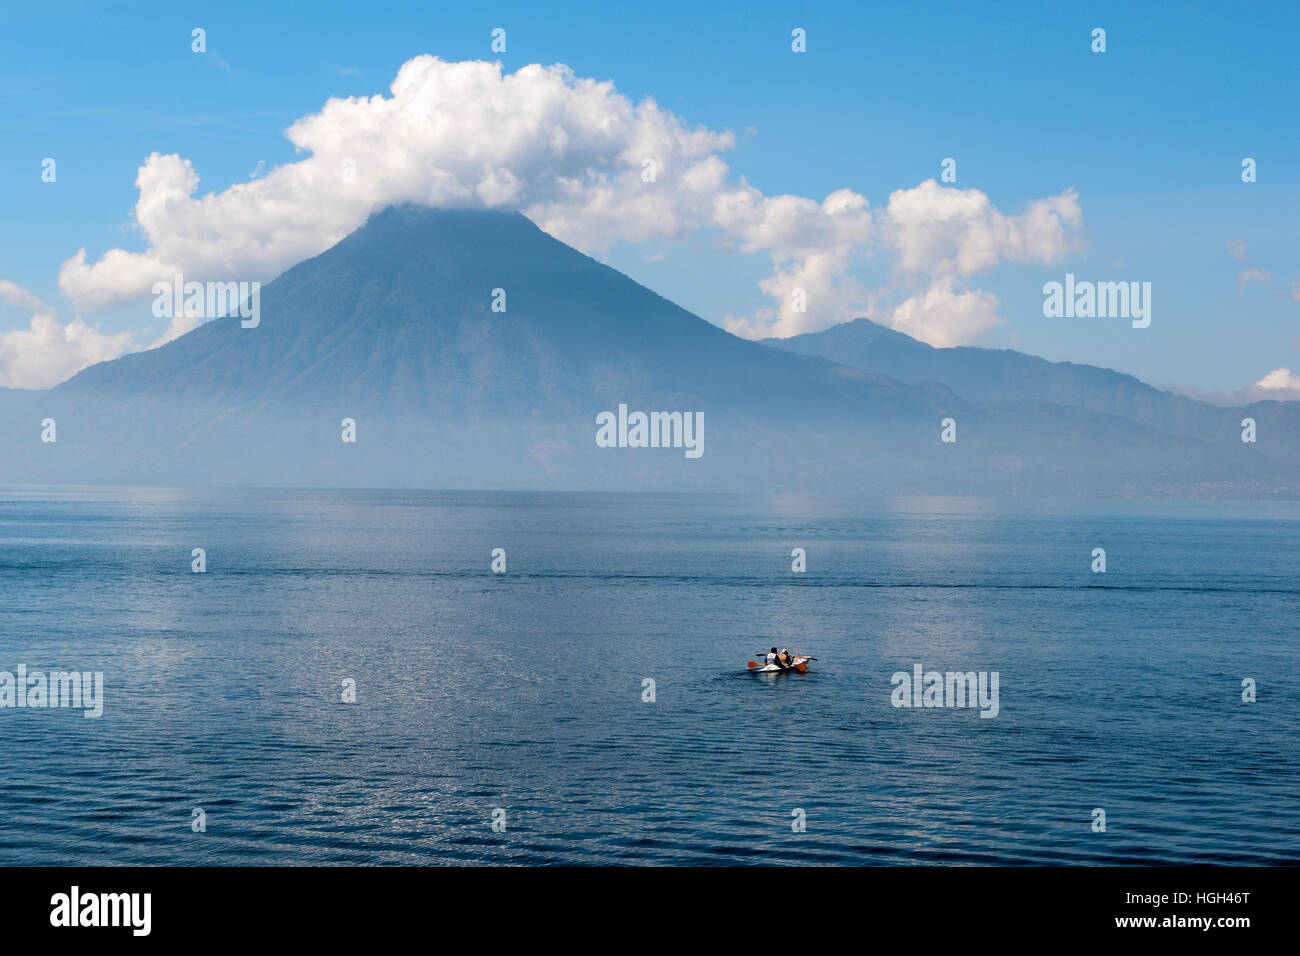 Lonely boat on a beautiful lake with volcano in background - Stock Image